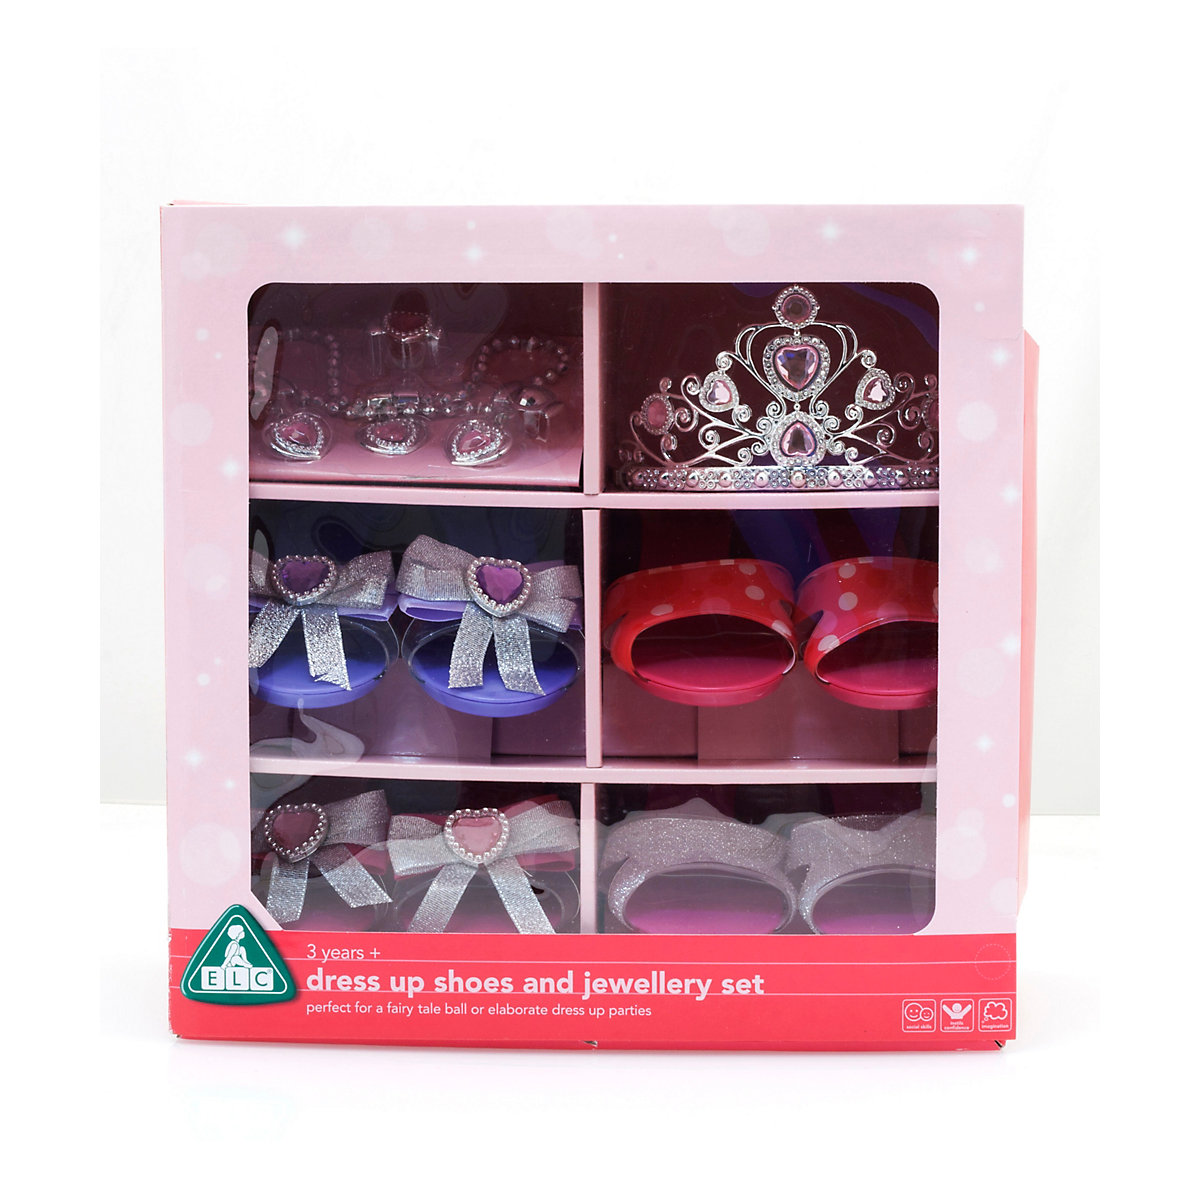 New ELC Girl Magical Mimi Dress Up Shoes and Jewellery Set Toy From 3 years - Dressing Up Gifts